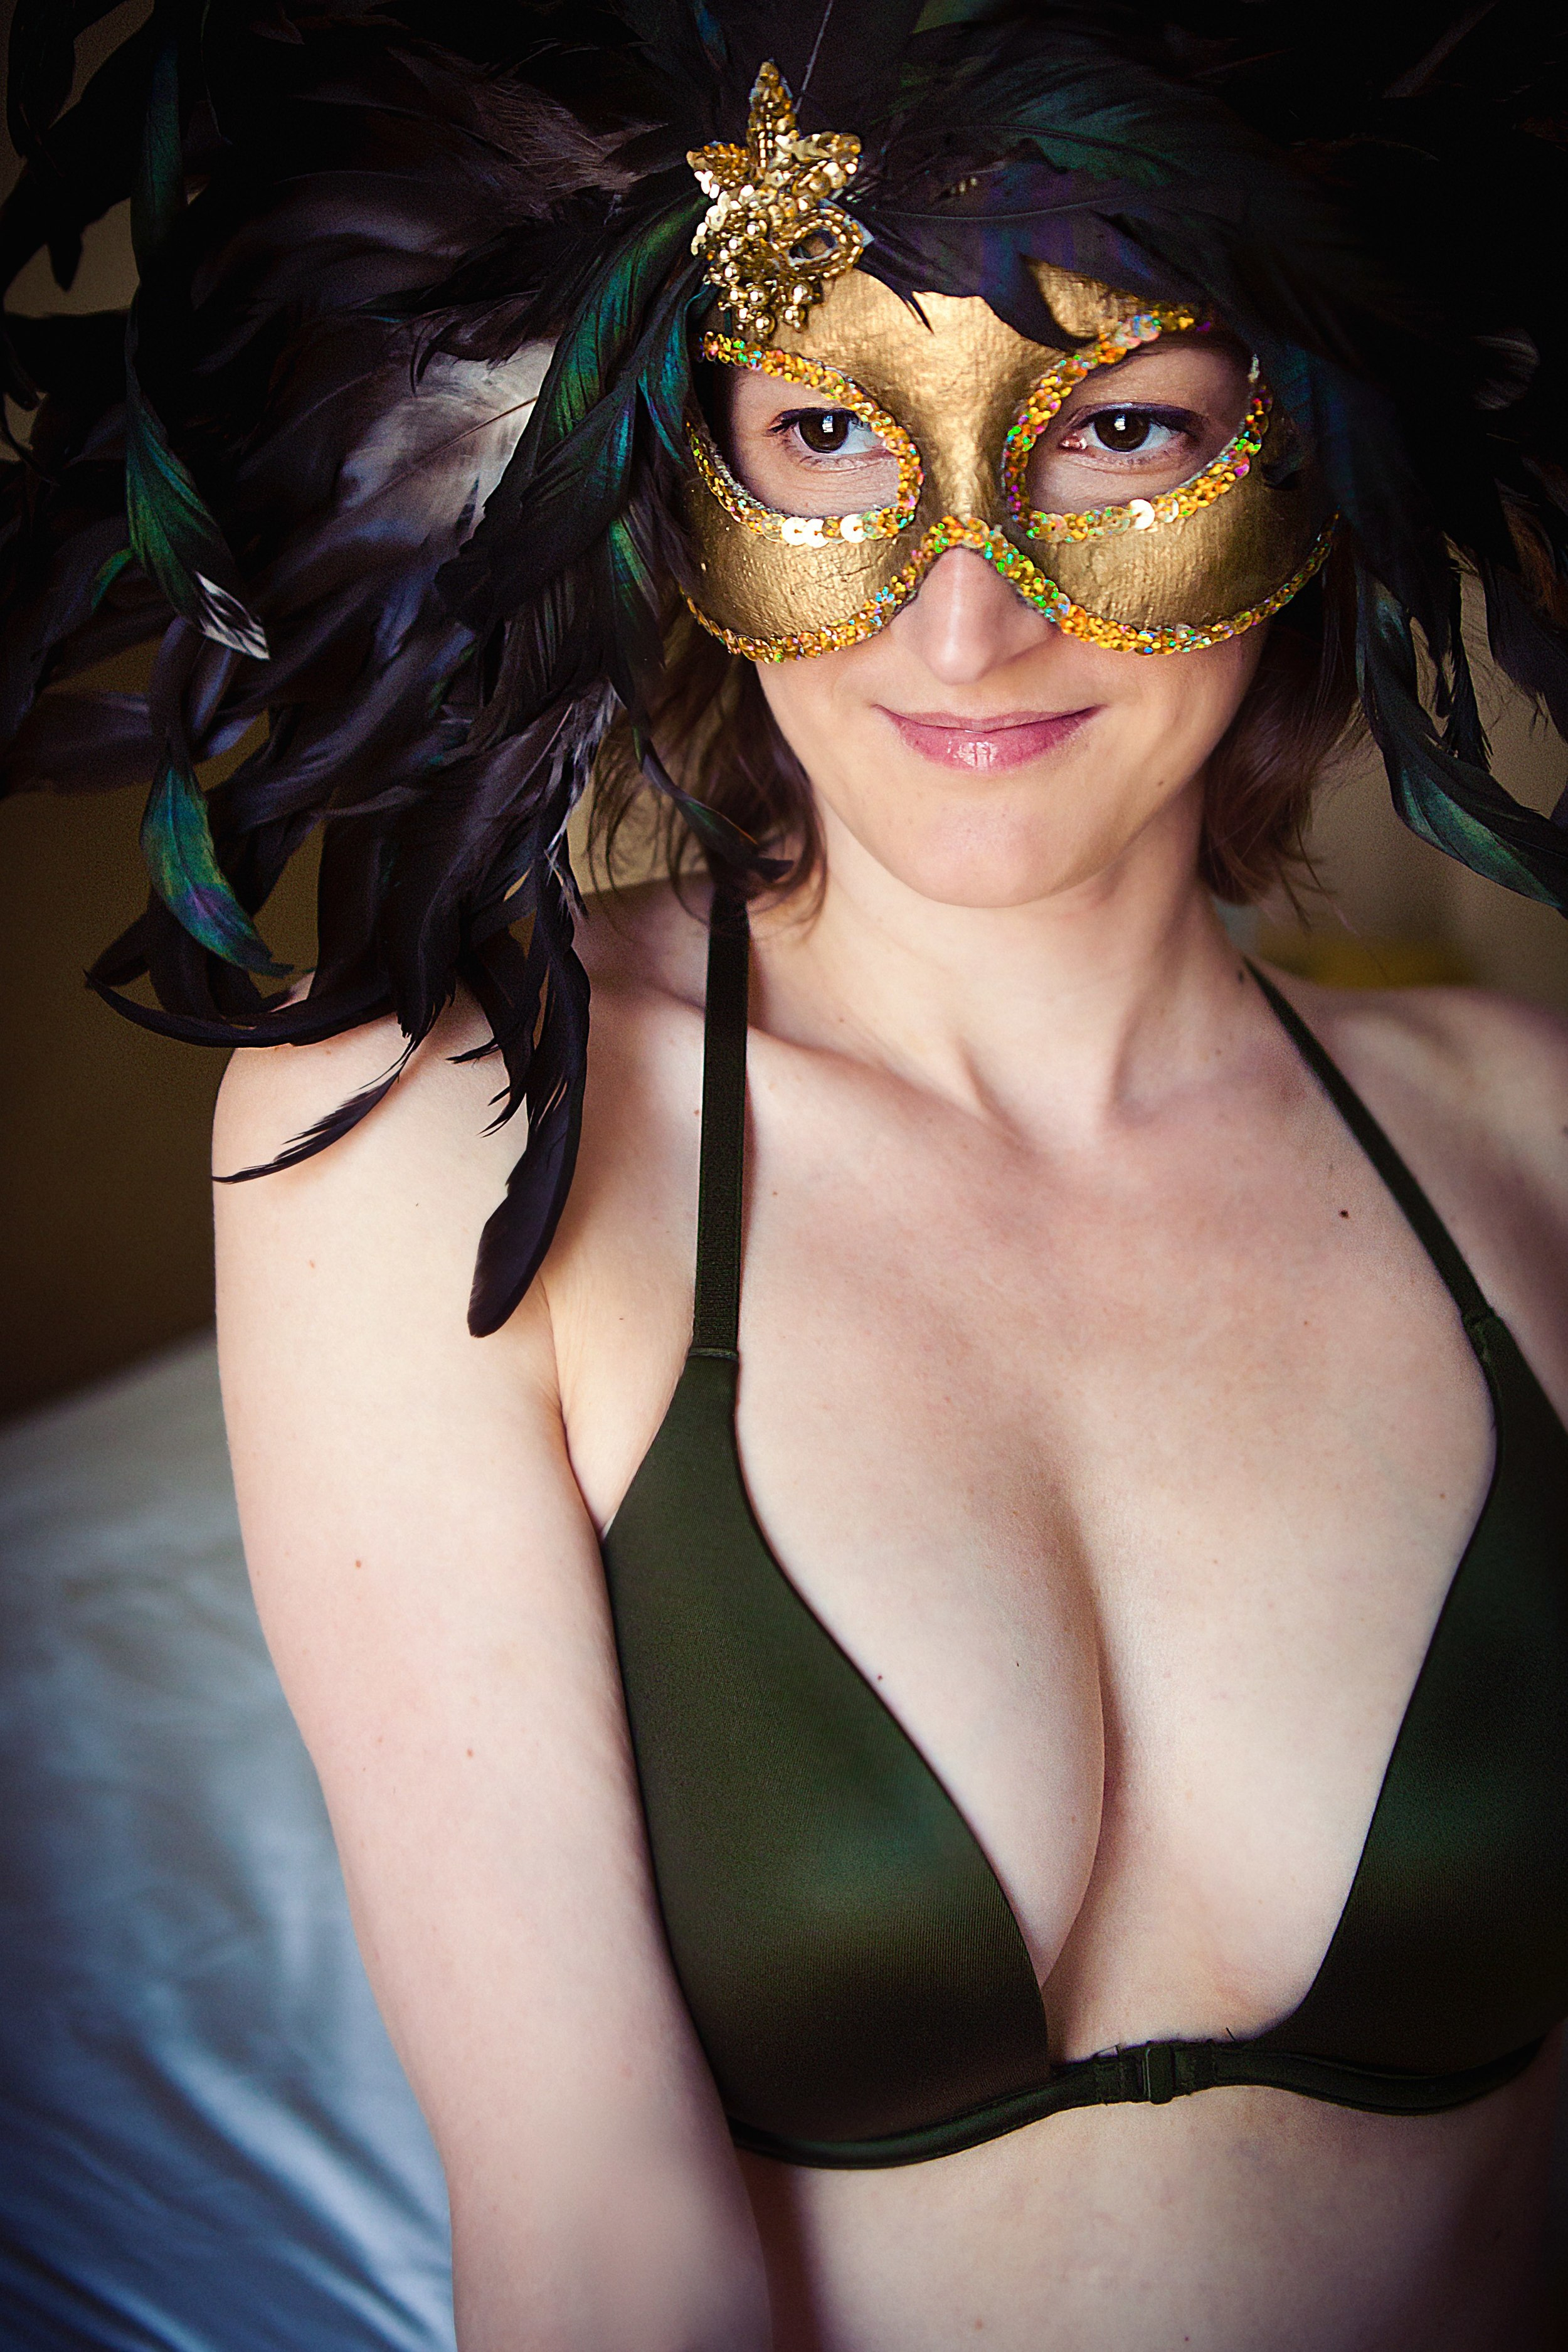 Laura in the Mardi Gras mask she was wearing the night she & her now-husband met.